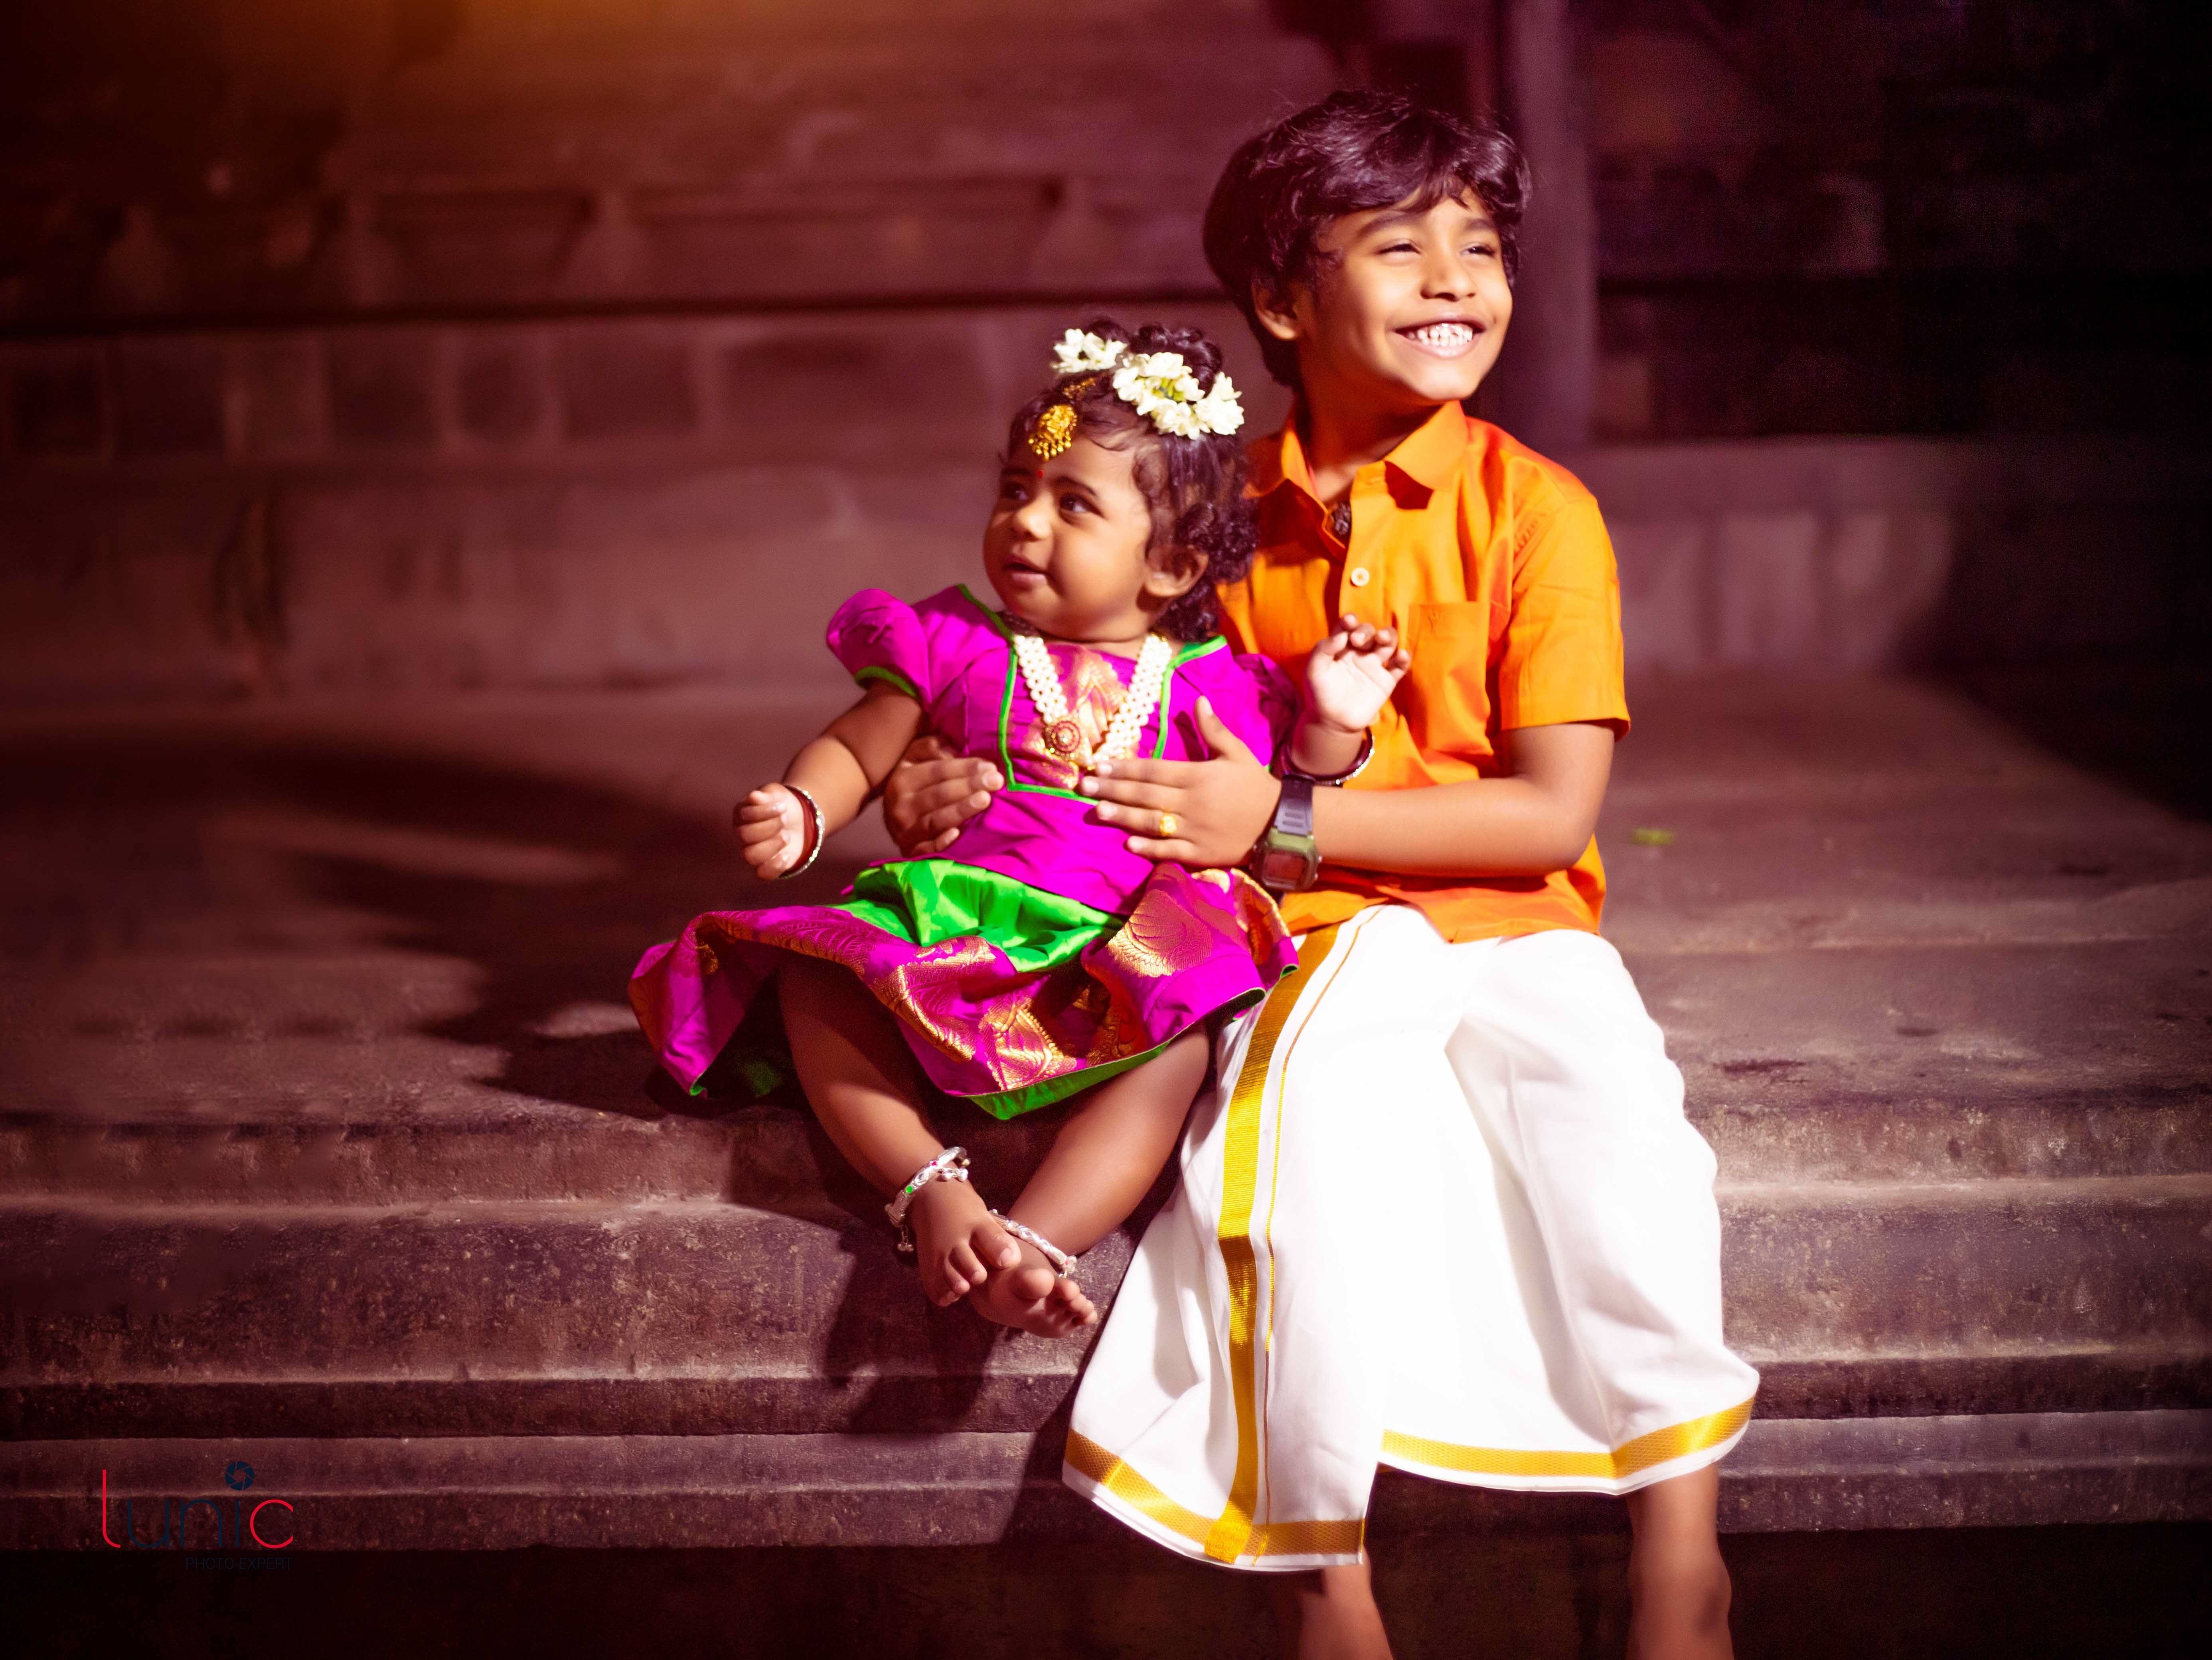 cute baby siblings pose for photography